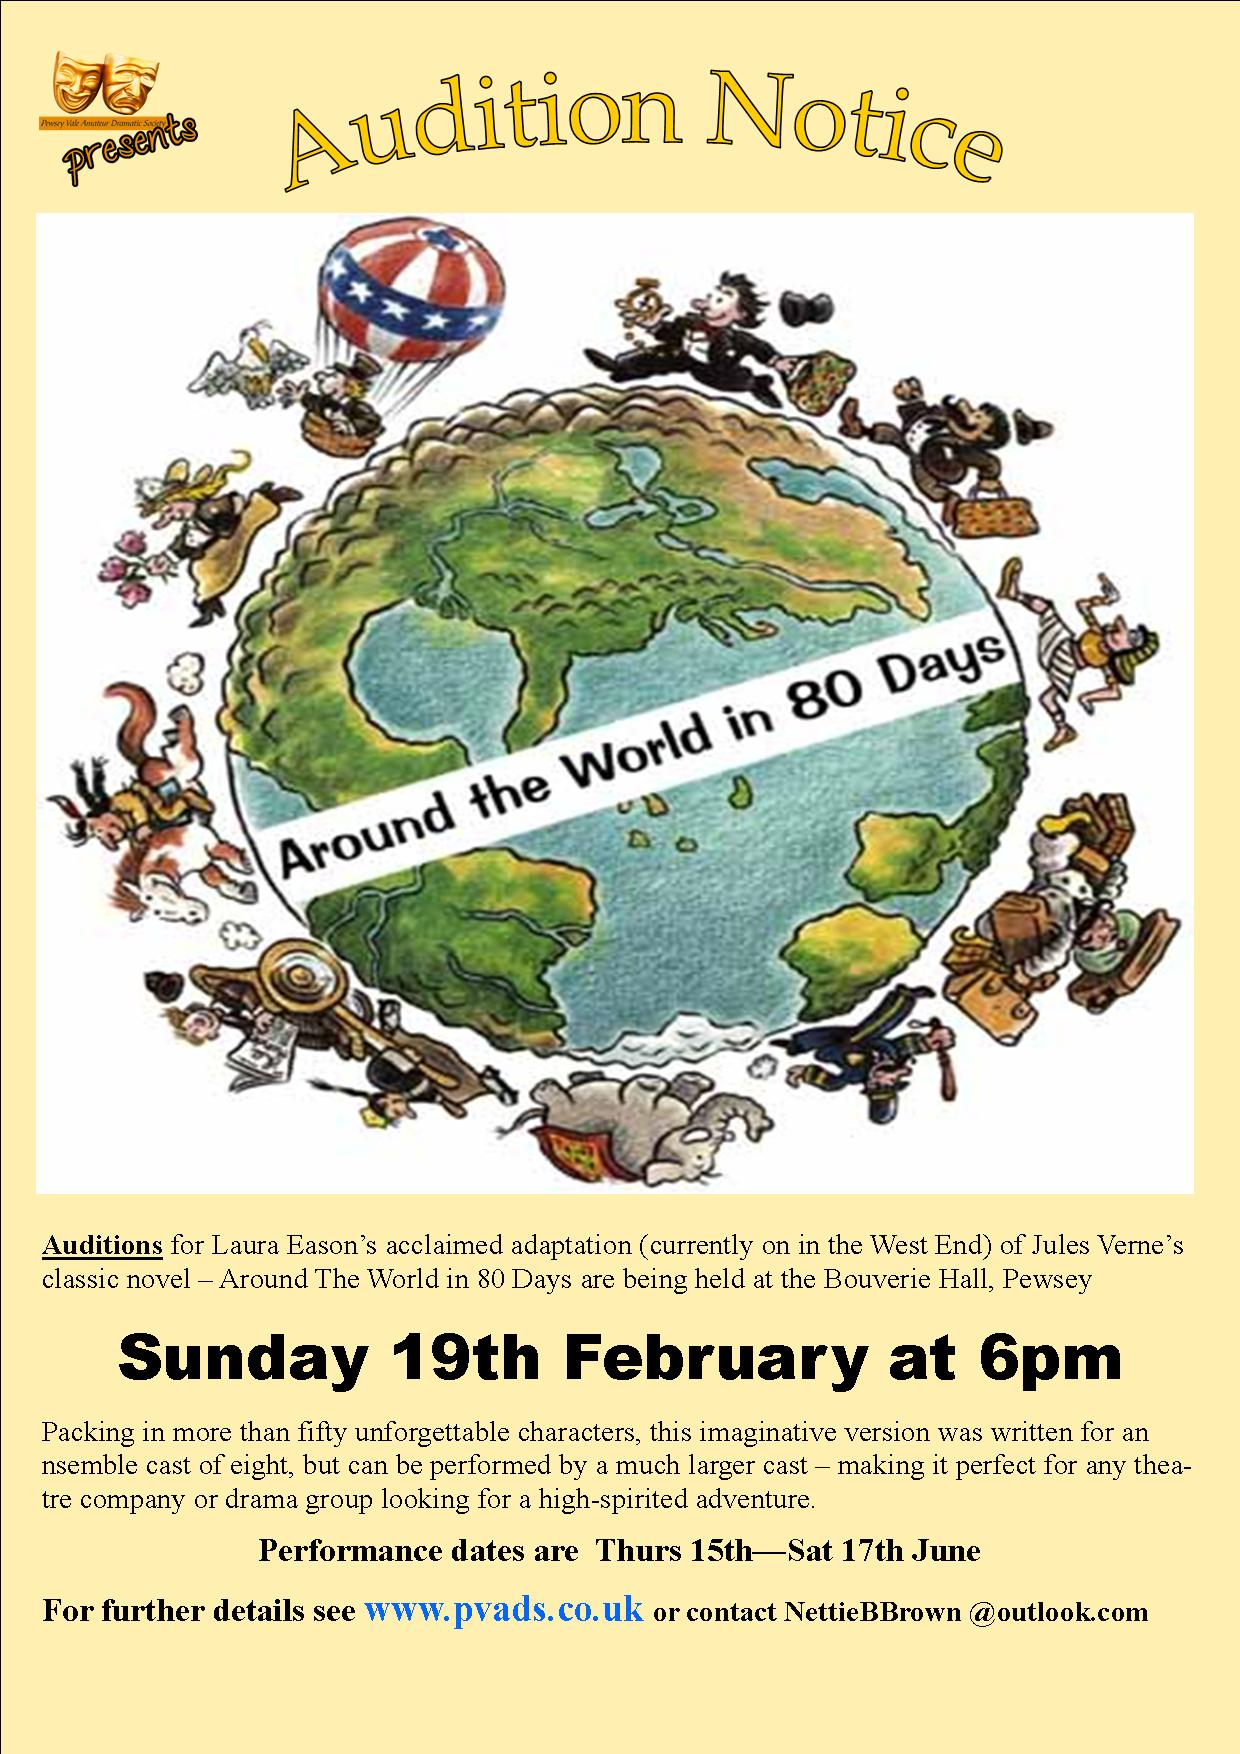 AUDITIONS – Play – Around the World in 80 Days – PVADS Website